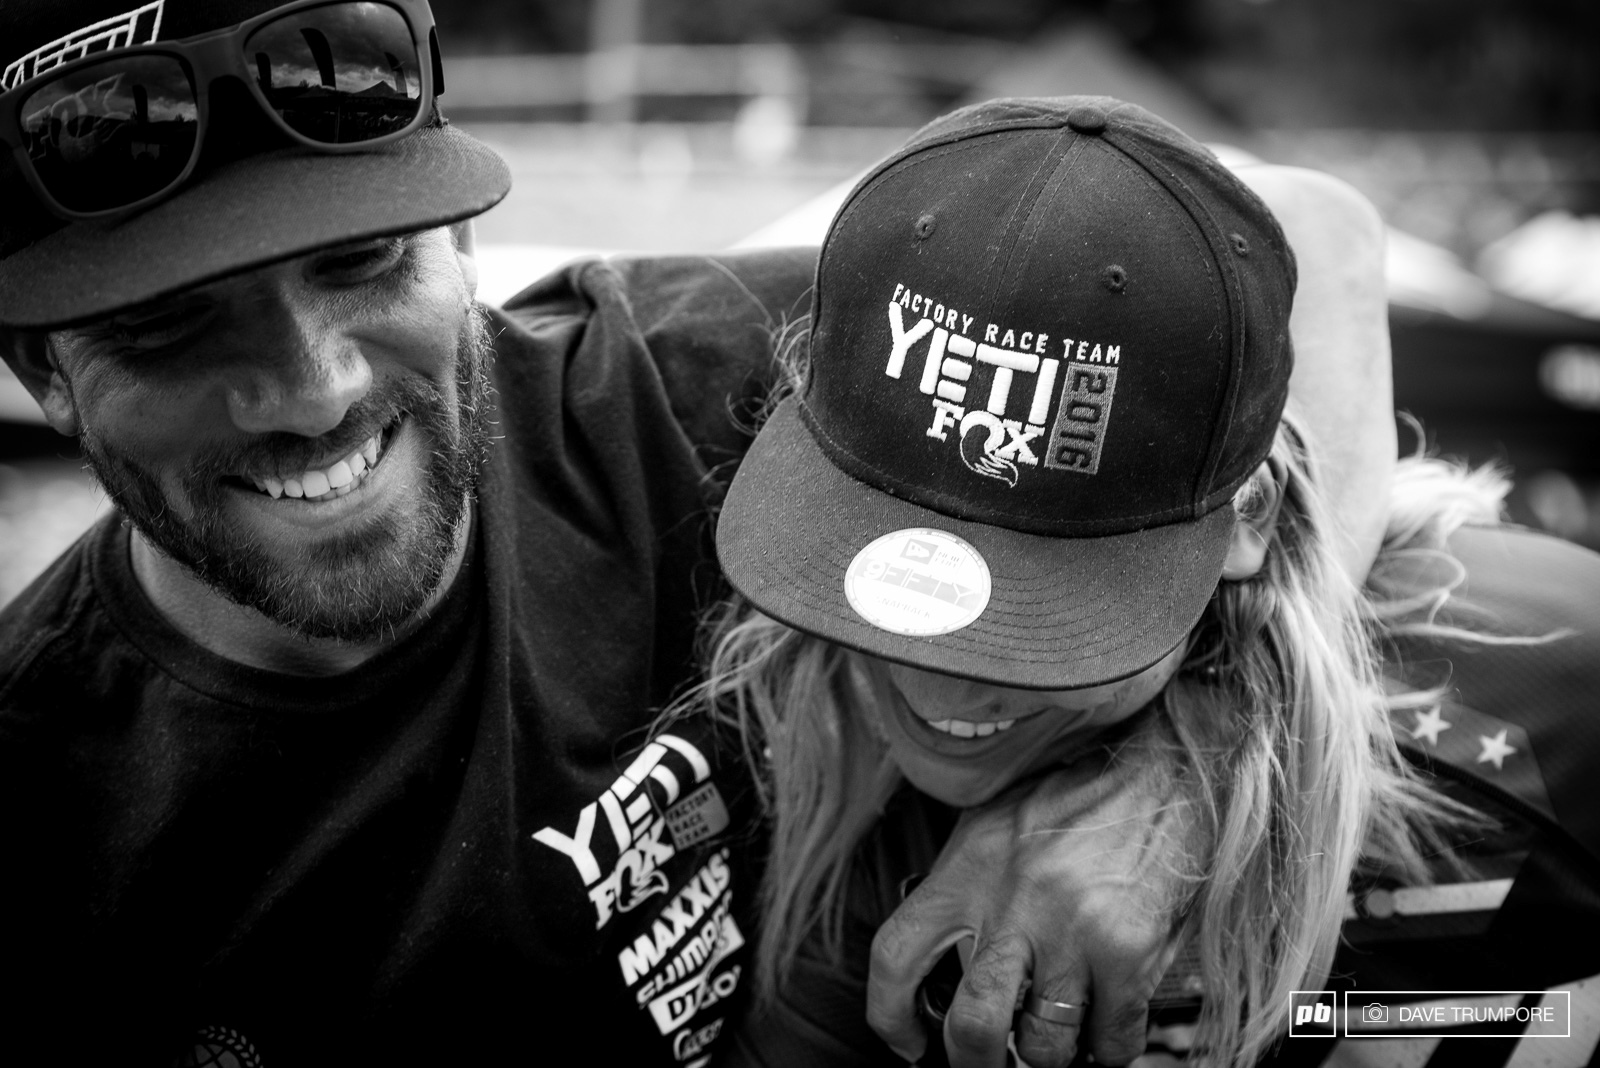 Yeti s team boss couldn t have been any more proud of his newest recruit this weekend.